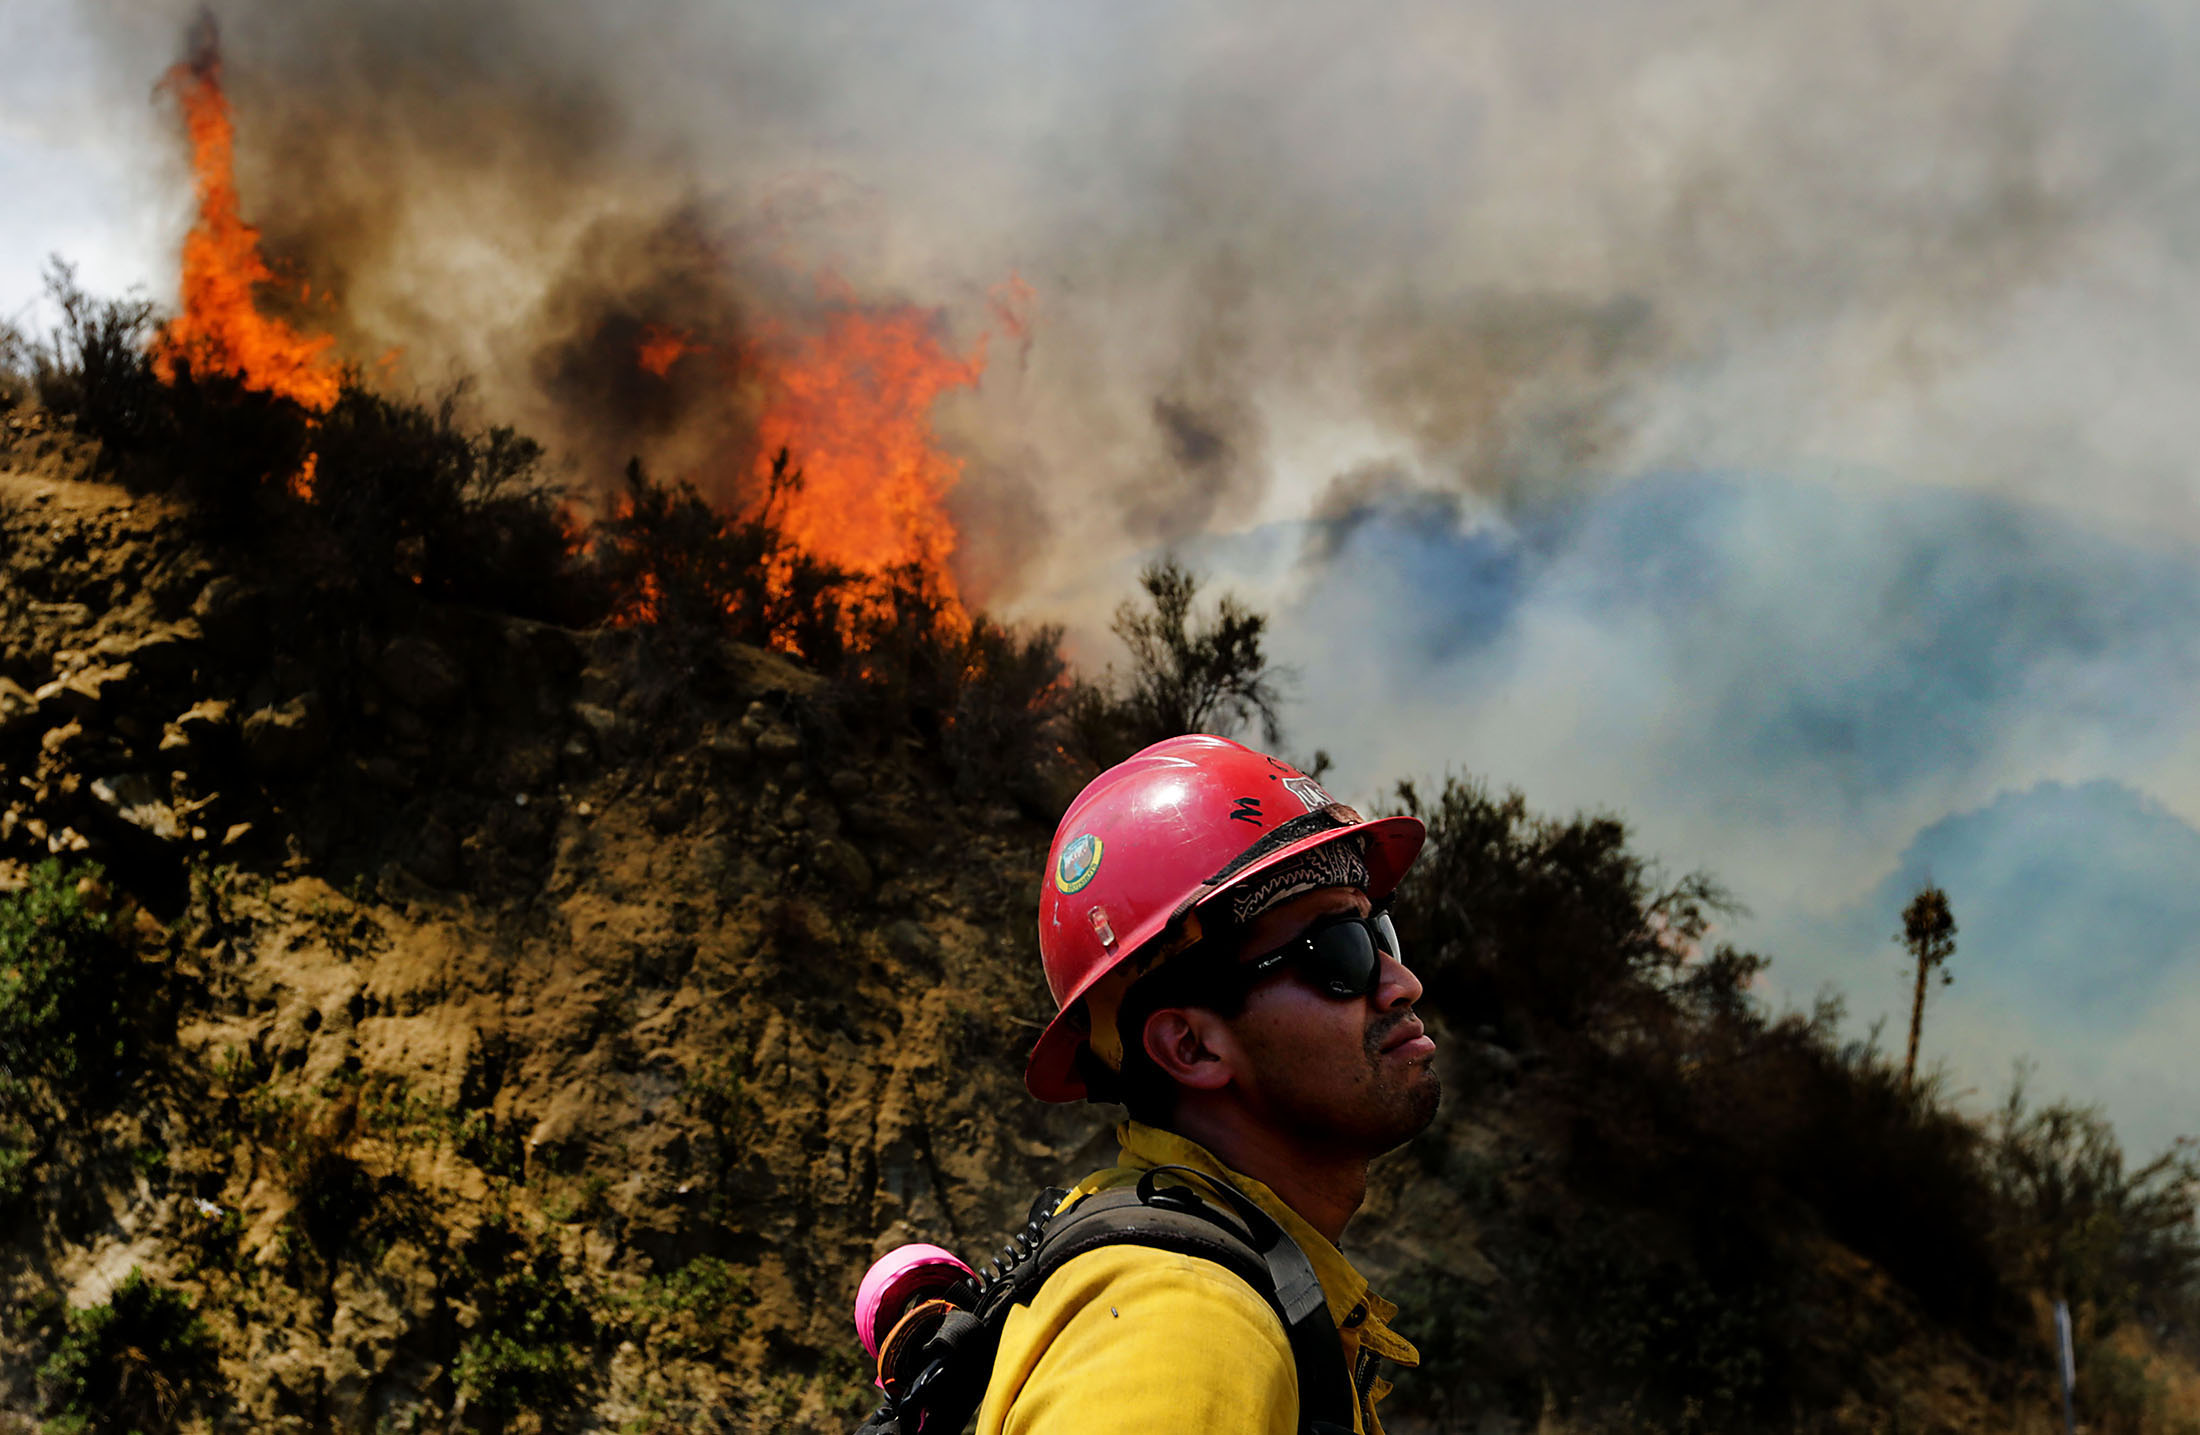 A Hotshot firefighter watches as Cranston fire grows to over 1,200 acres in the San Bernardino National Forest above Hemet on Wednesday, July 25, 2018.